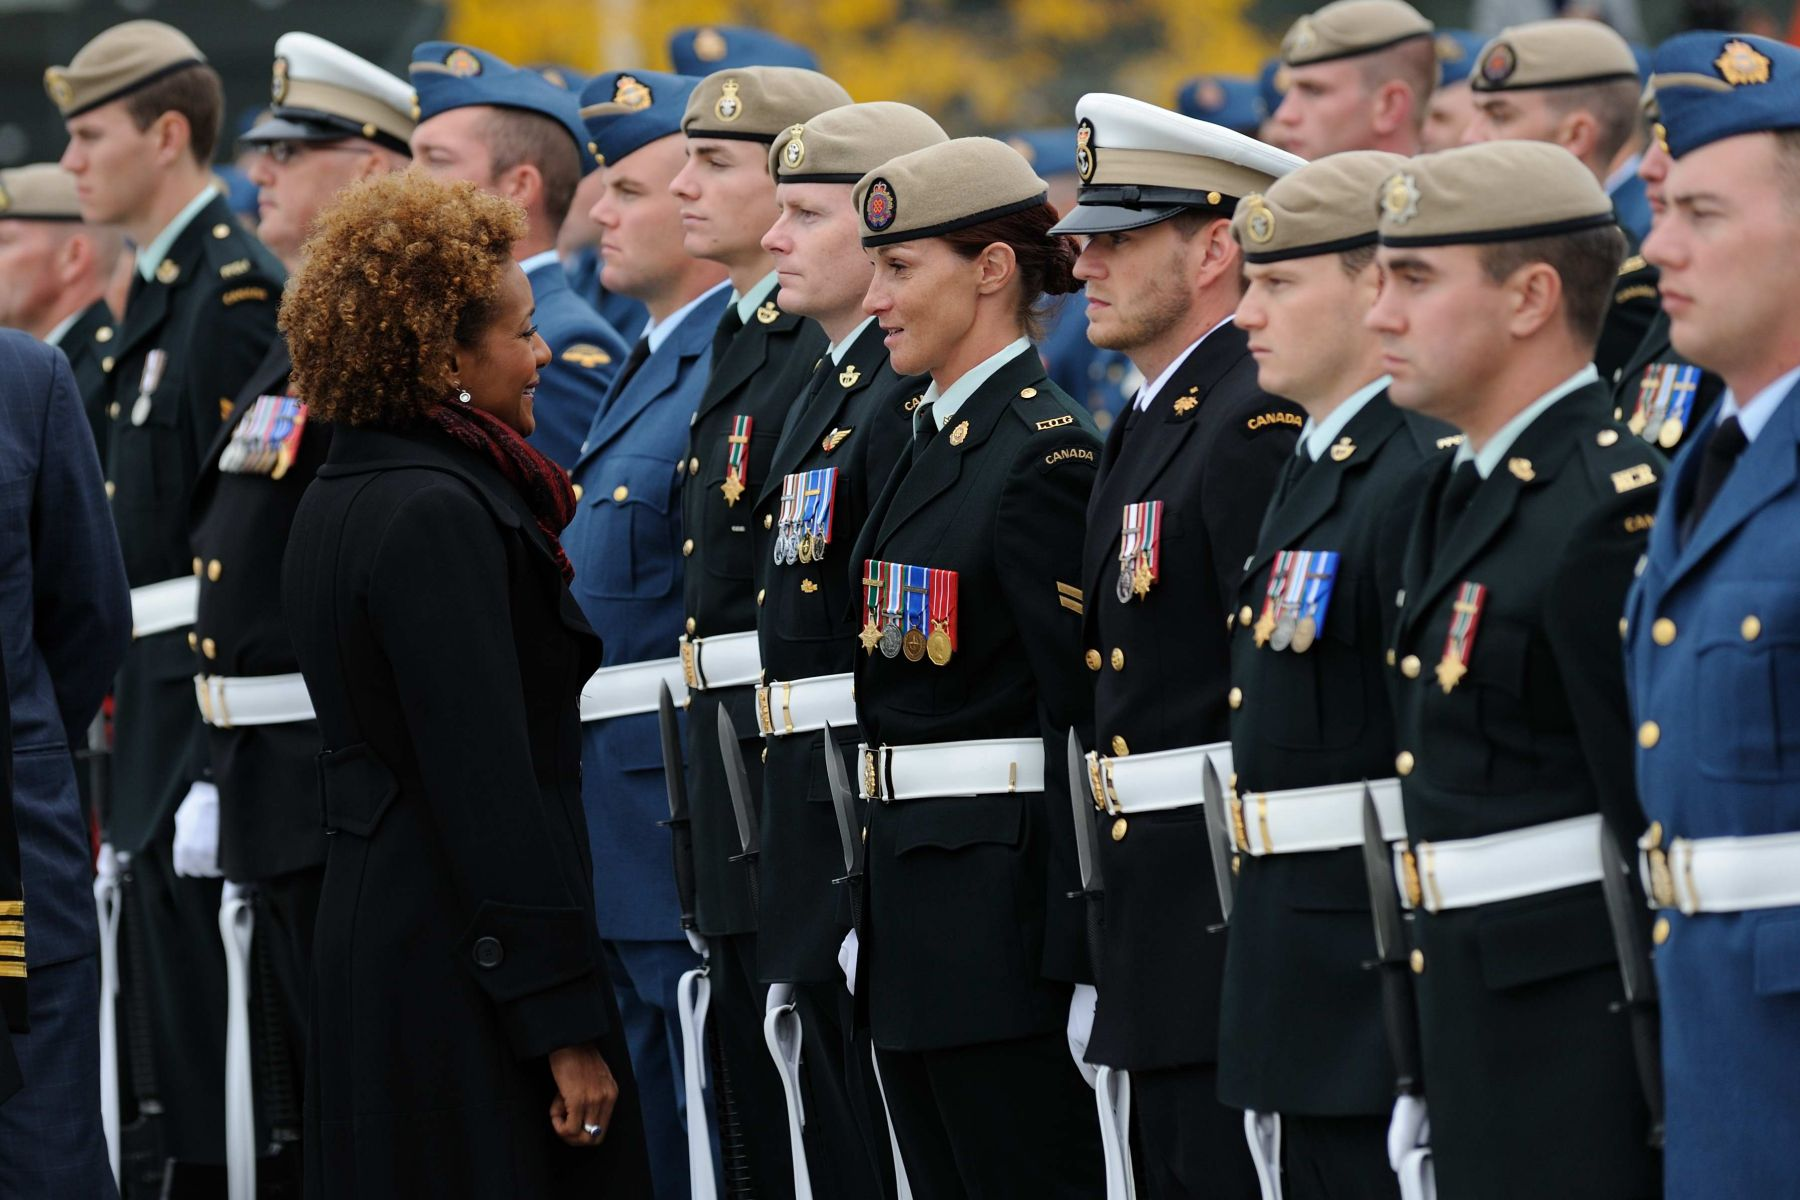 To mark the end of the mandate of Canada's 27th governor general, the Canadian Forces payed tribute to Her Excellency the Right Honourable Michaëlle Jean, Governor General and Commander in Chief of Canada, during a military ceremony on September 29, 2010. During the inspection of the guard of honour, Her Excellency stopped to speak to Master Corporal Haché.